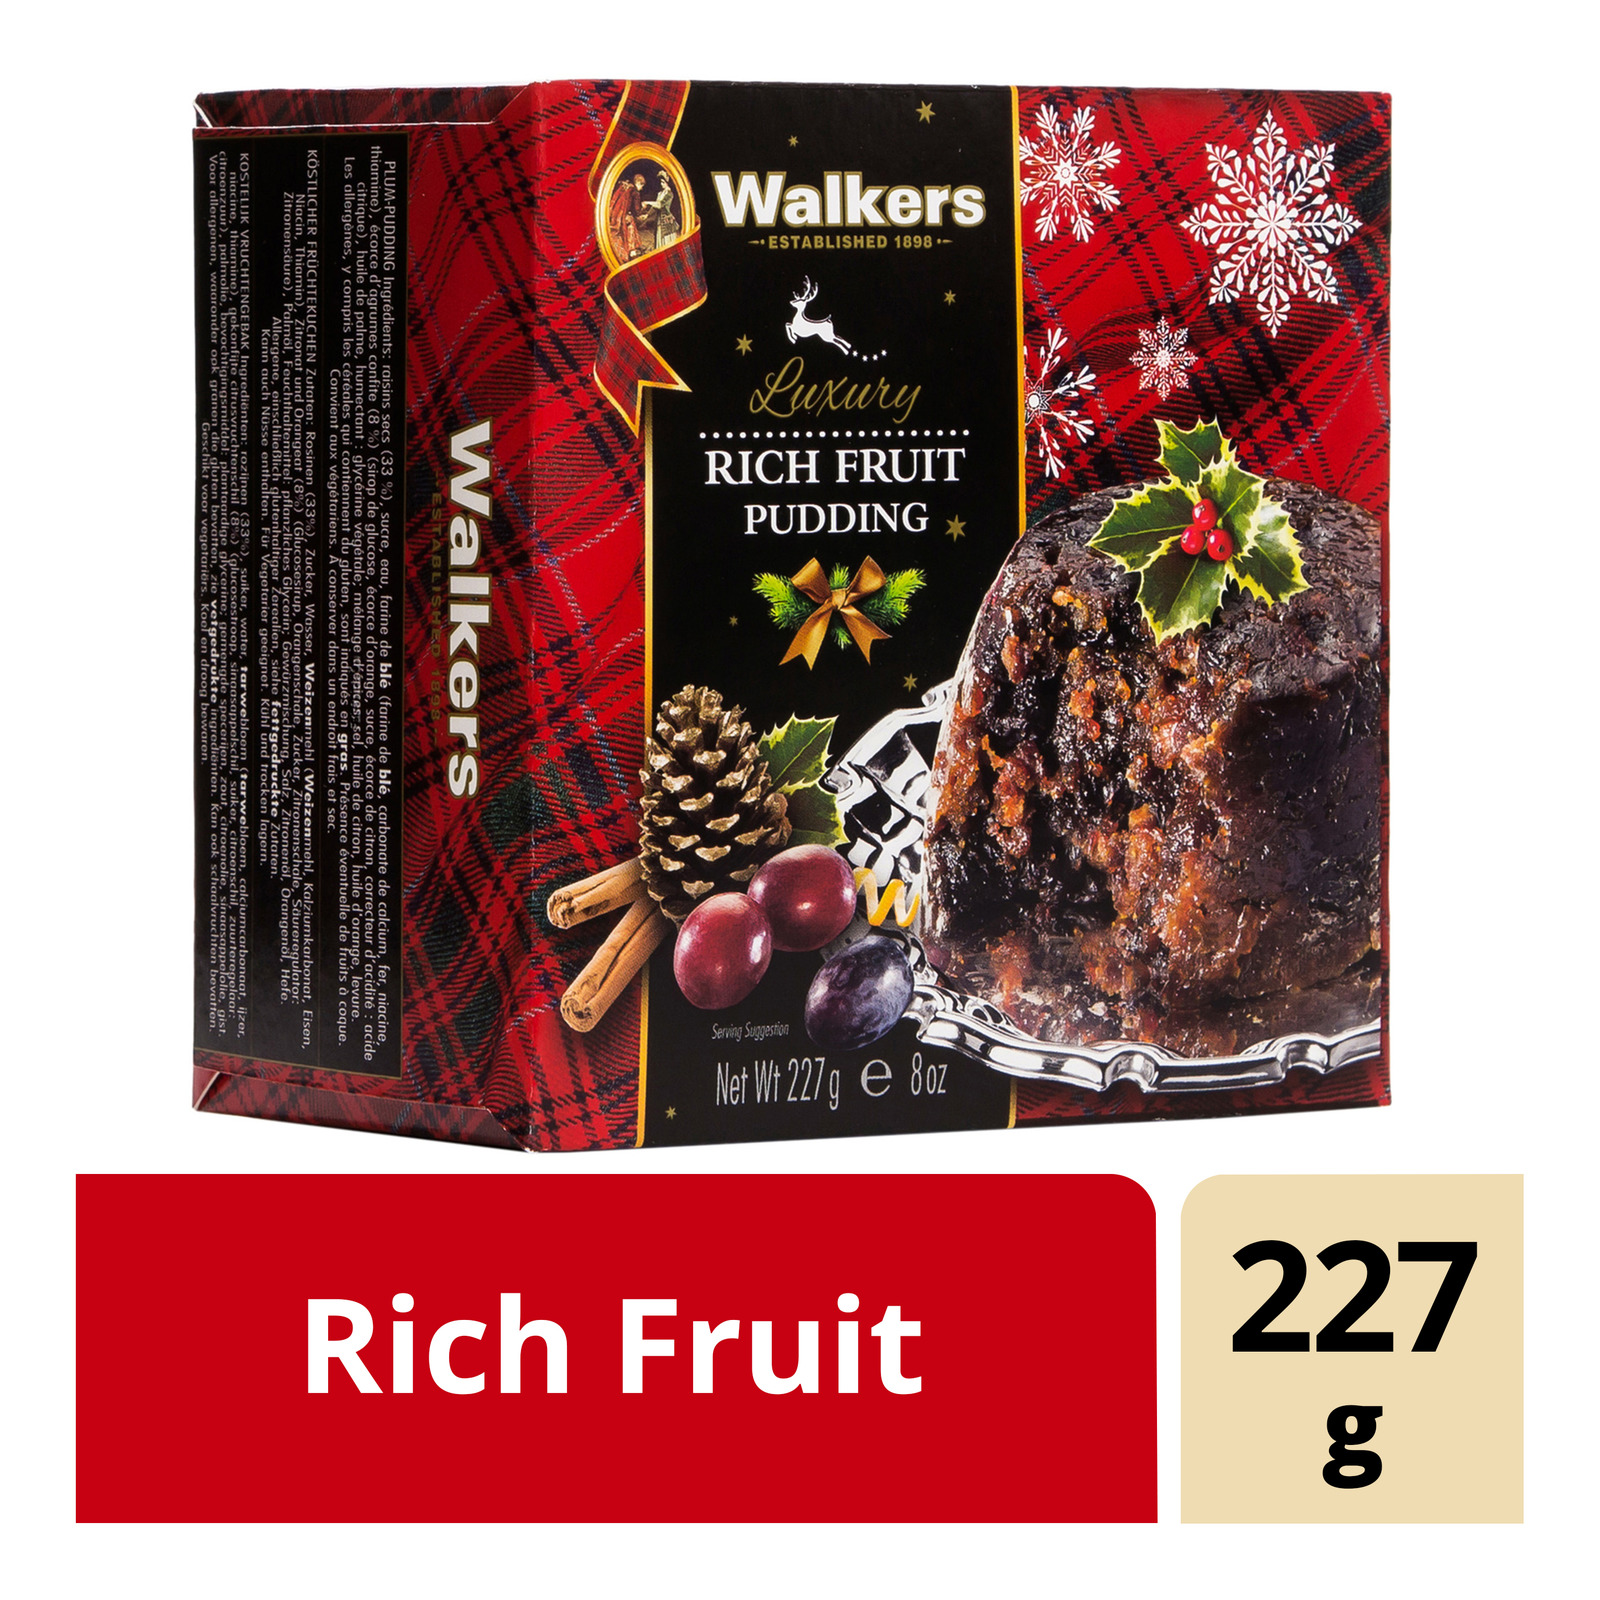 Walkers Pudding Cake - Rich Fruit